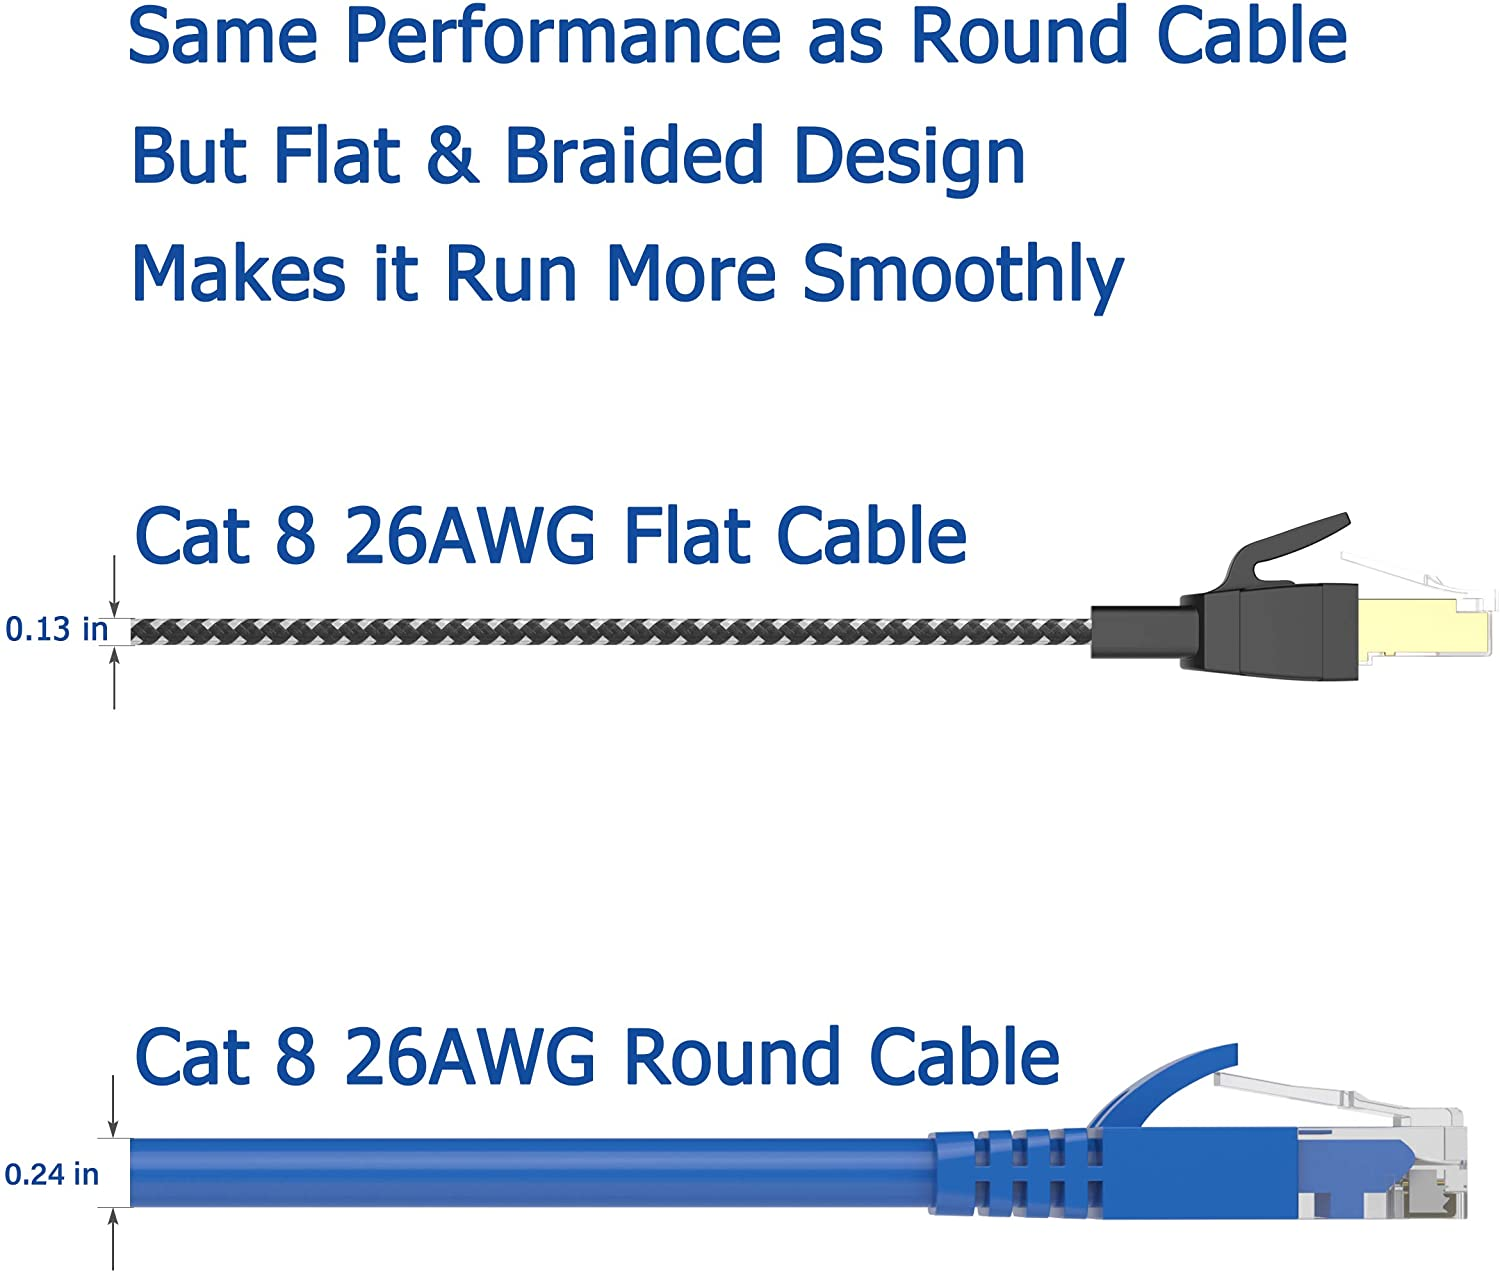 Cat 8 Ethernet Cable 25 ft, 26AWG Nylon Braided High Speed Heavy Duty Cat8 Network LAN Patch Cord, 40Gbps 2000Mhz SFTP RJ45 Flat Cable Shielded in Wall, Indoor&Outdoor for Modem/Router/Gaming/PC: Industrial & Scientific